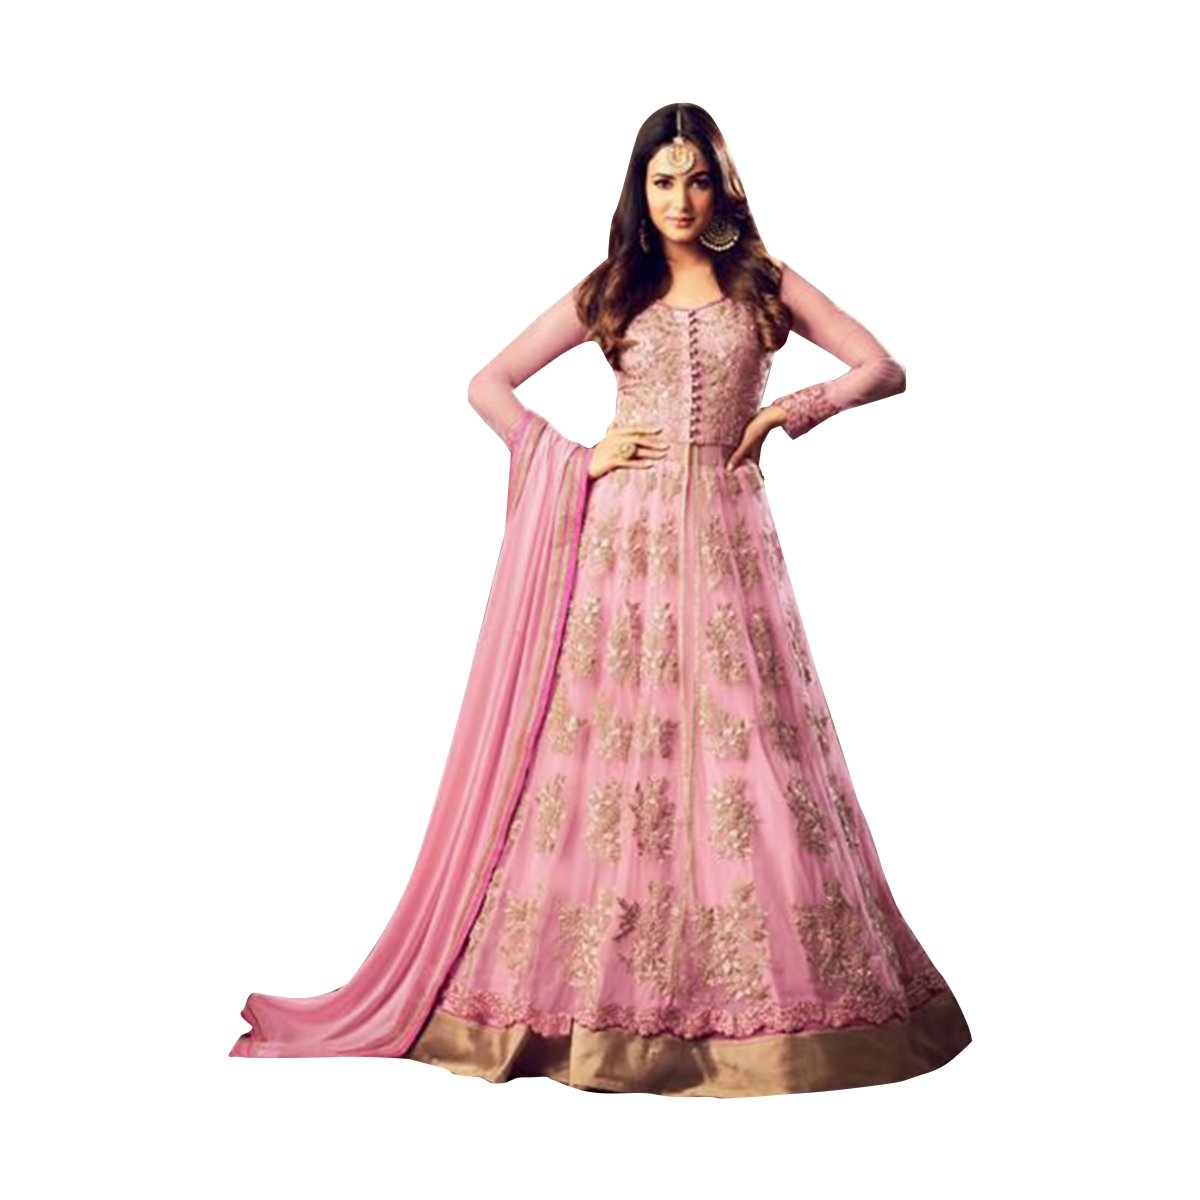 BOLLYWOOD DESIGNER NEW LAUNCH ANARKALI SALWAR KAMEEZ GOWN LONG HEAVY WEDDING CEREMONY PARTY WEAR BY ETHNIC EMPORIUM